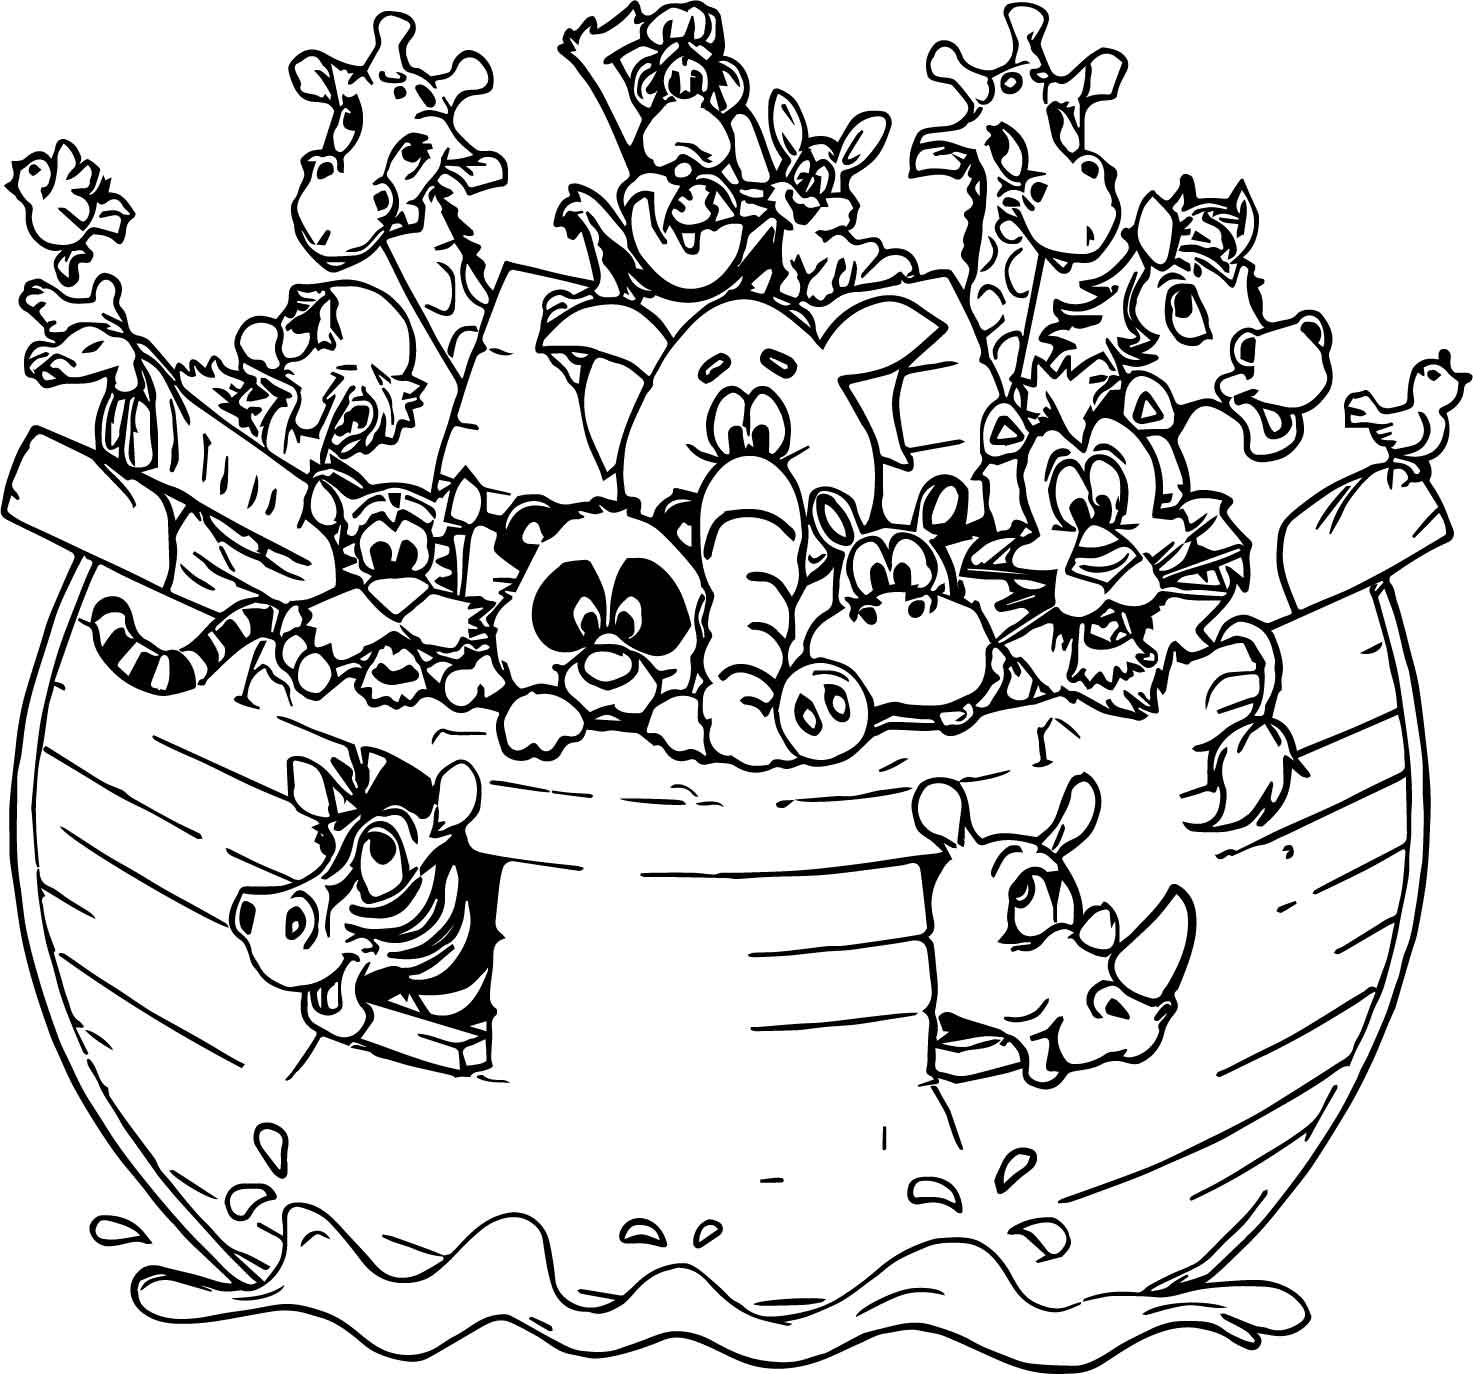 Noah ark all animal coloring page for Noah ark coloring page